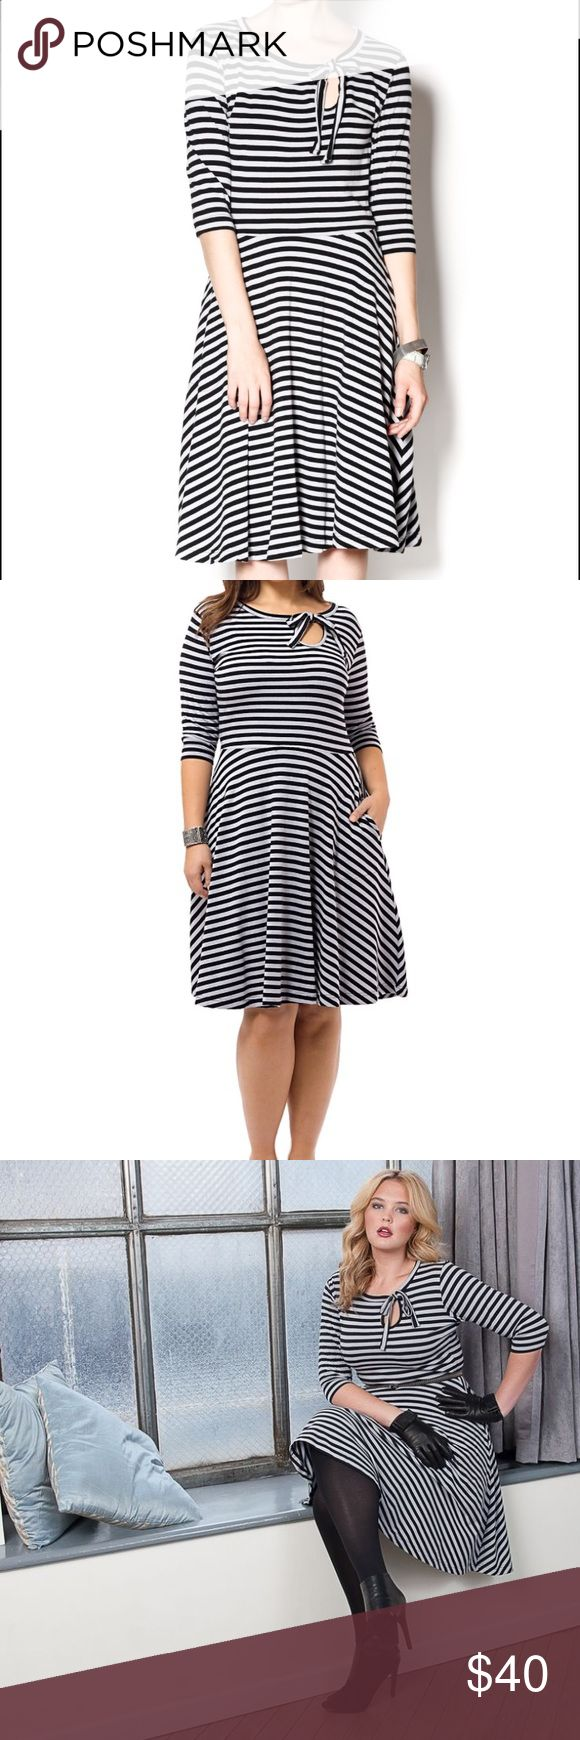 Effie's Heart Elysees Striped Dress Stretch cotton-knit A-line dress with knotted accent and keyhole at crew neck, defined drop waist, pockets at full skirt, allover stripe print.Elysees Dress in Gray & Black Stripe from Effie's Heart. Composed of a soft and sturdy cotton-blend, this gray and black stripe dress features a bevy of horizontal and figure-flattering diagonal stripes, smooth three-quarter sleeves, and a vintage-inspired full skirt. Like New Condition only wore once! ModCloth…